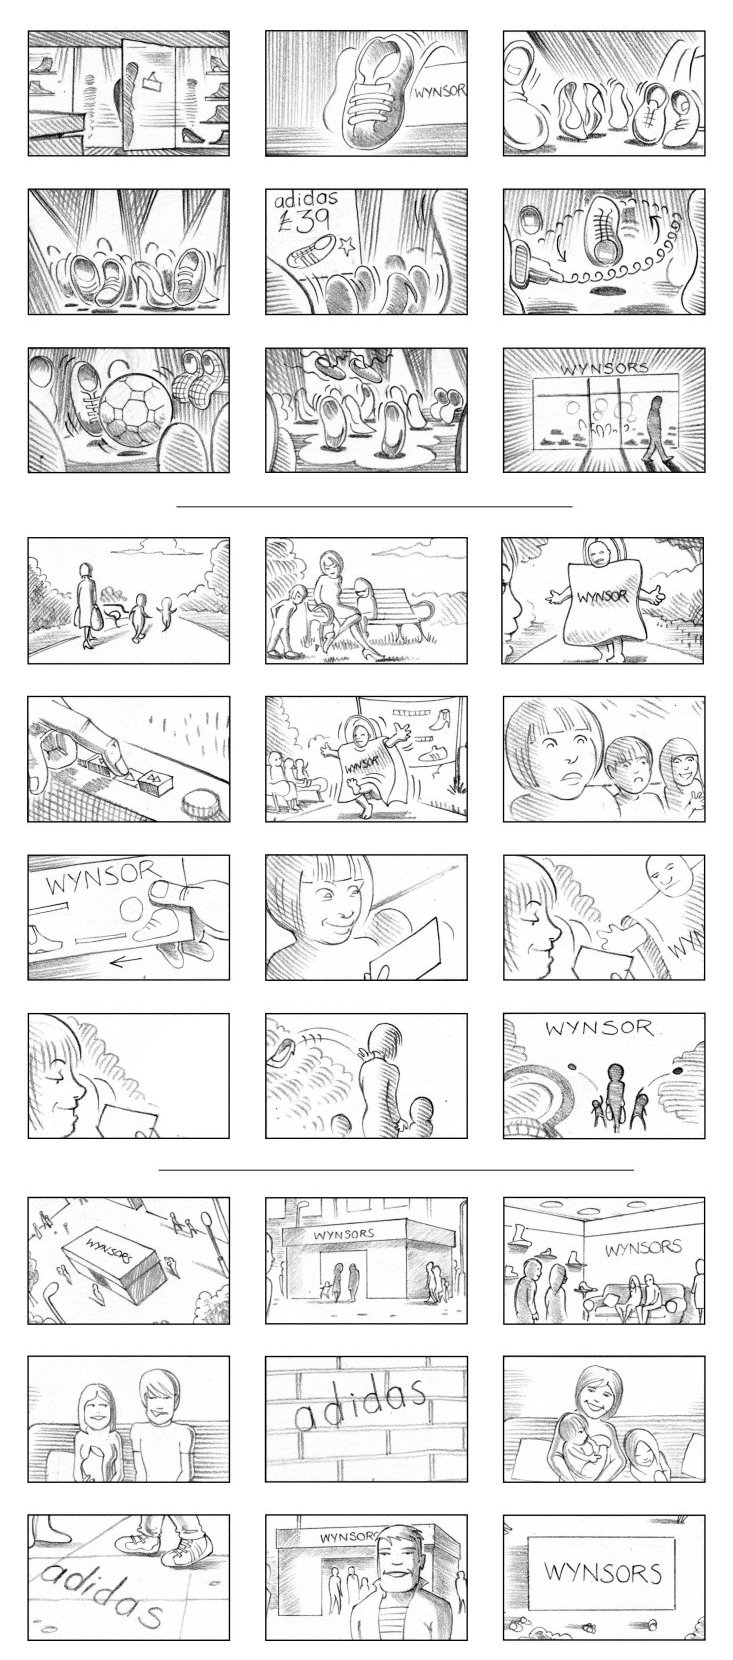 WYNSORS SHOES STORYBOARD BY ANDY SPARROW